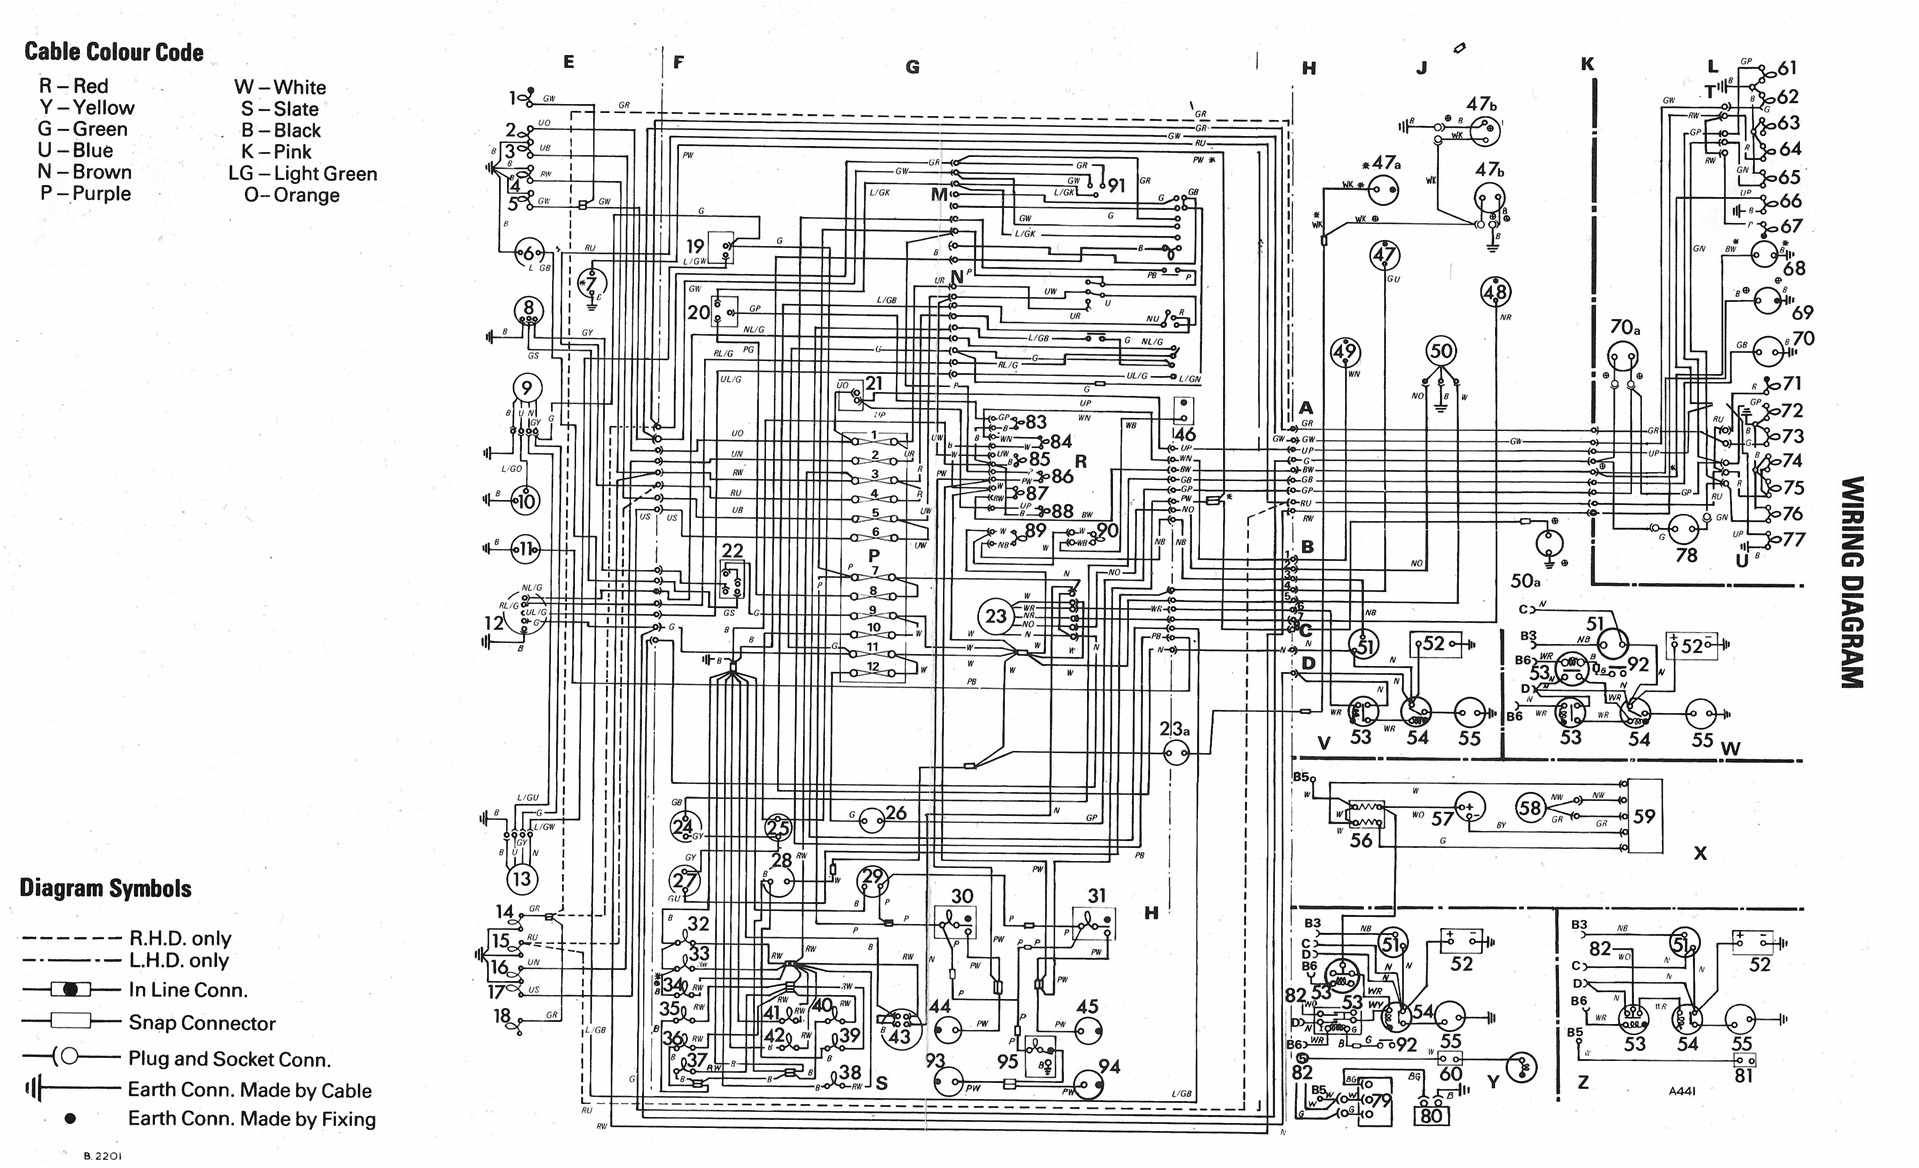 vw rabbit sel wiring diagram wiring diagram data schema Air Cooled VW Wiring Diagram 2008 volkswagen rabbit wiring diagram online wiring diagram vw rabbit sel wiring diagram